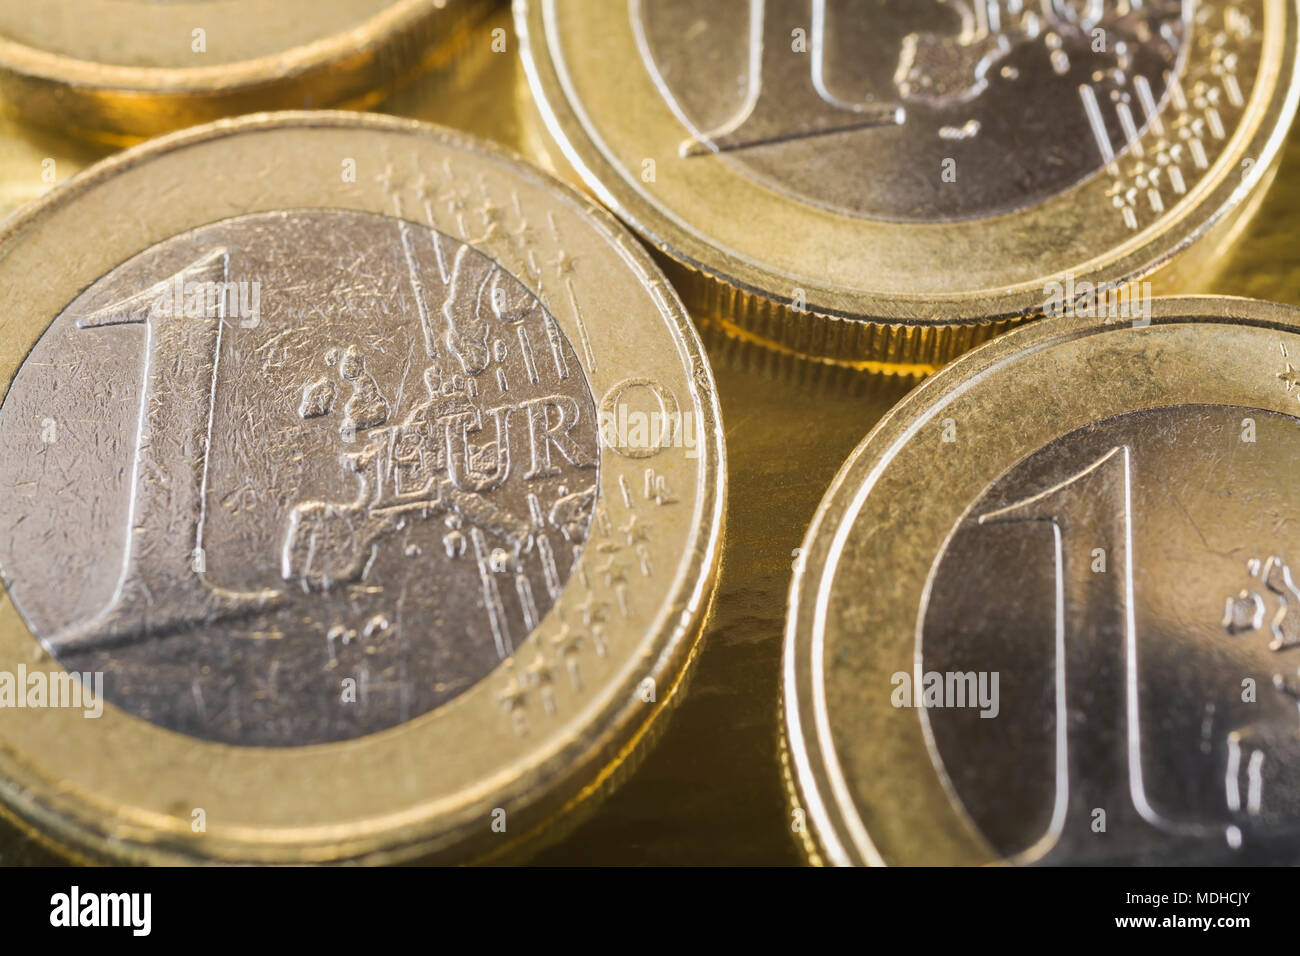 One Euro coins on gold background - Stock Image